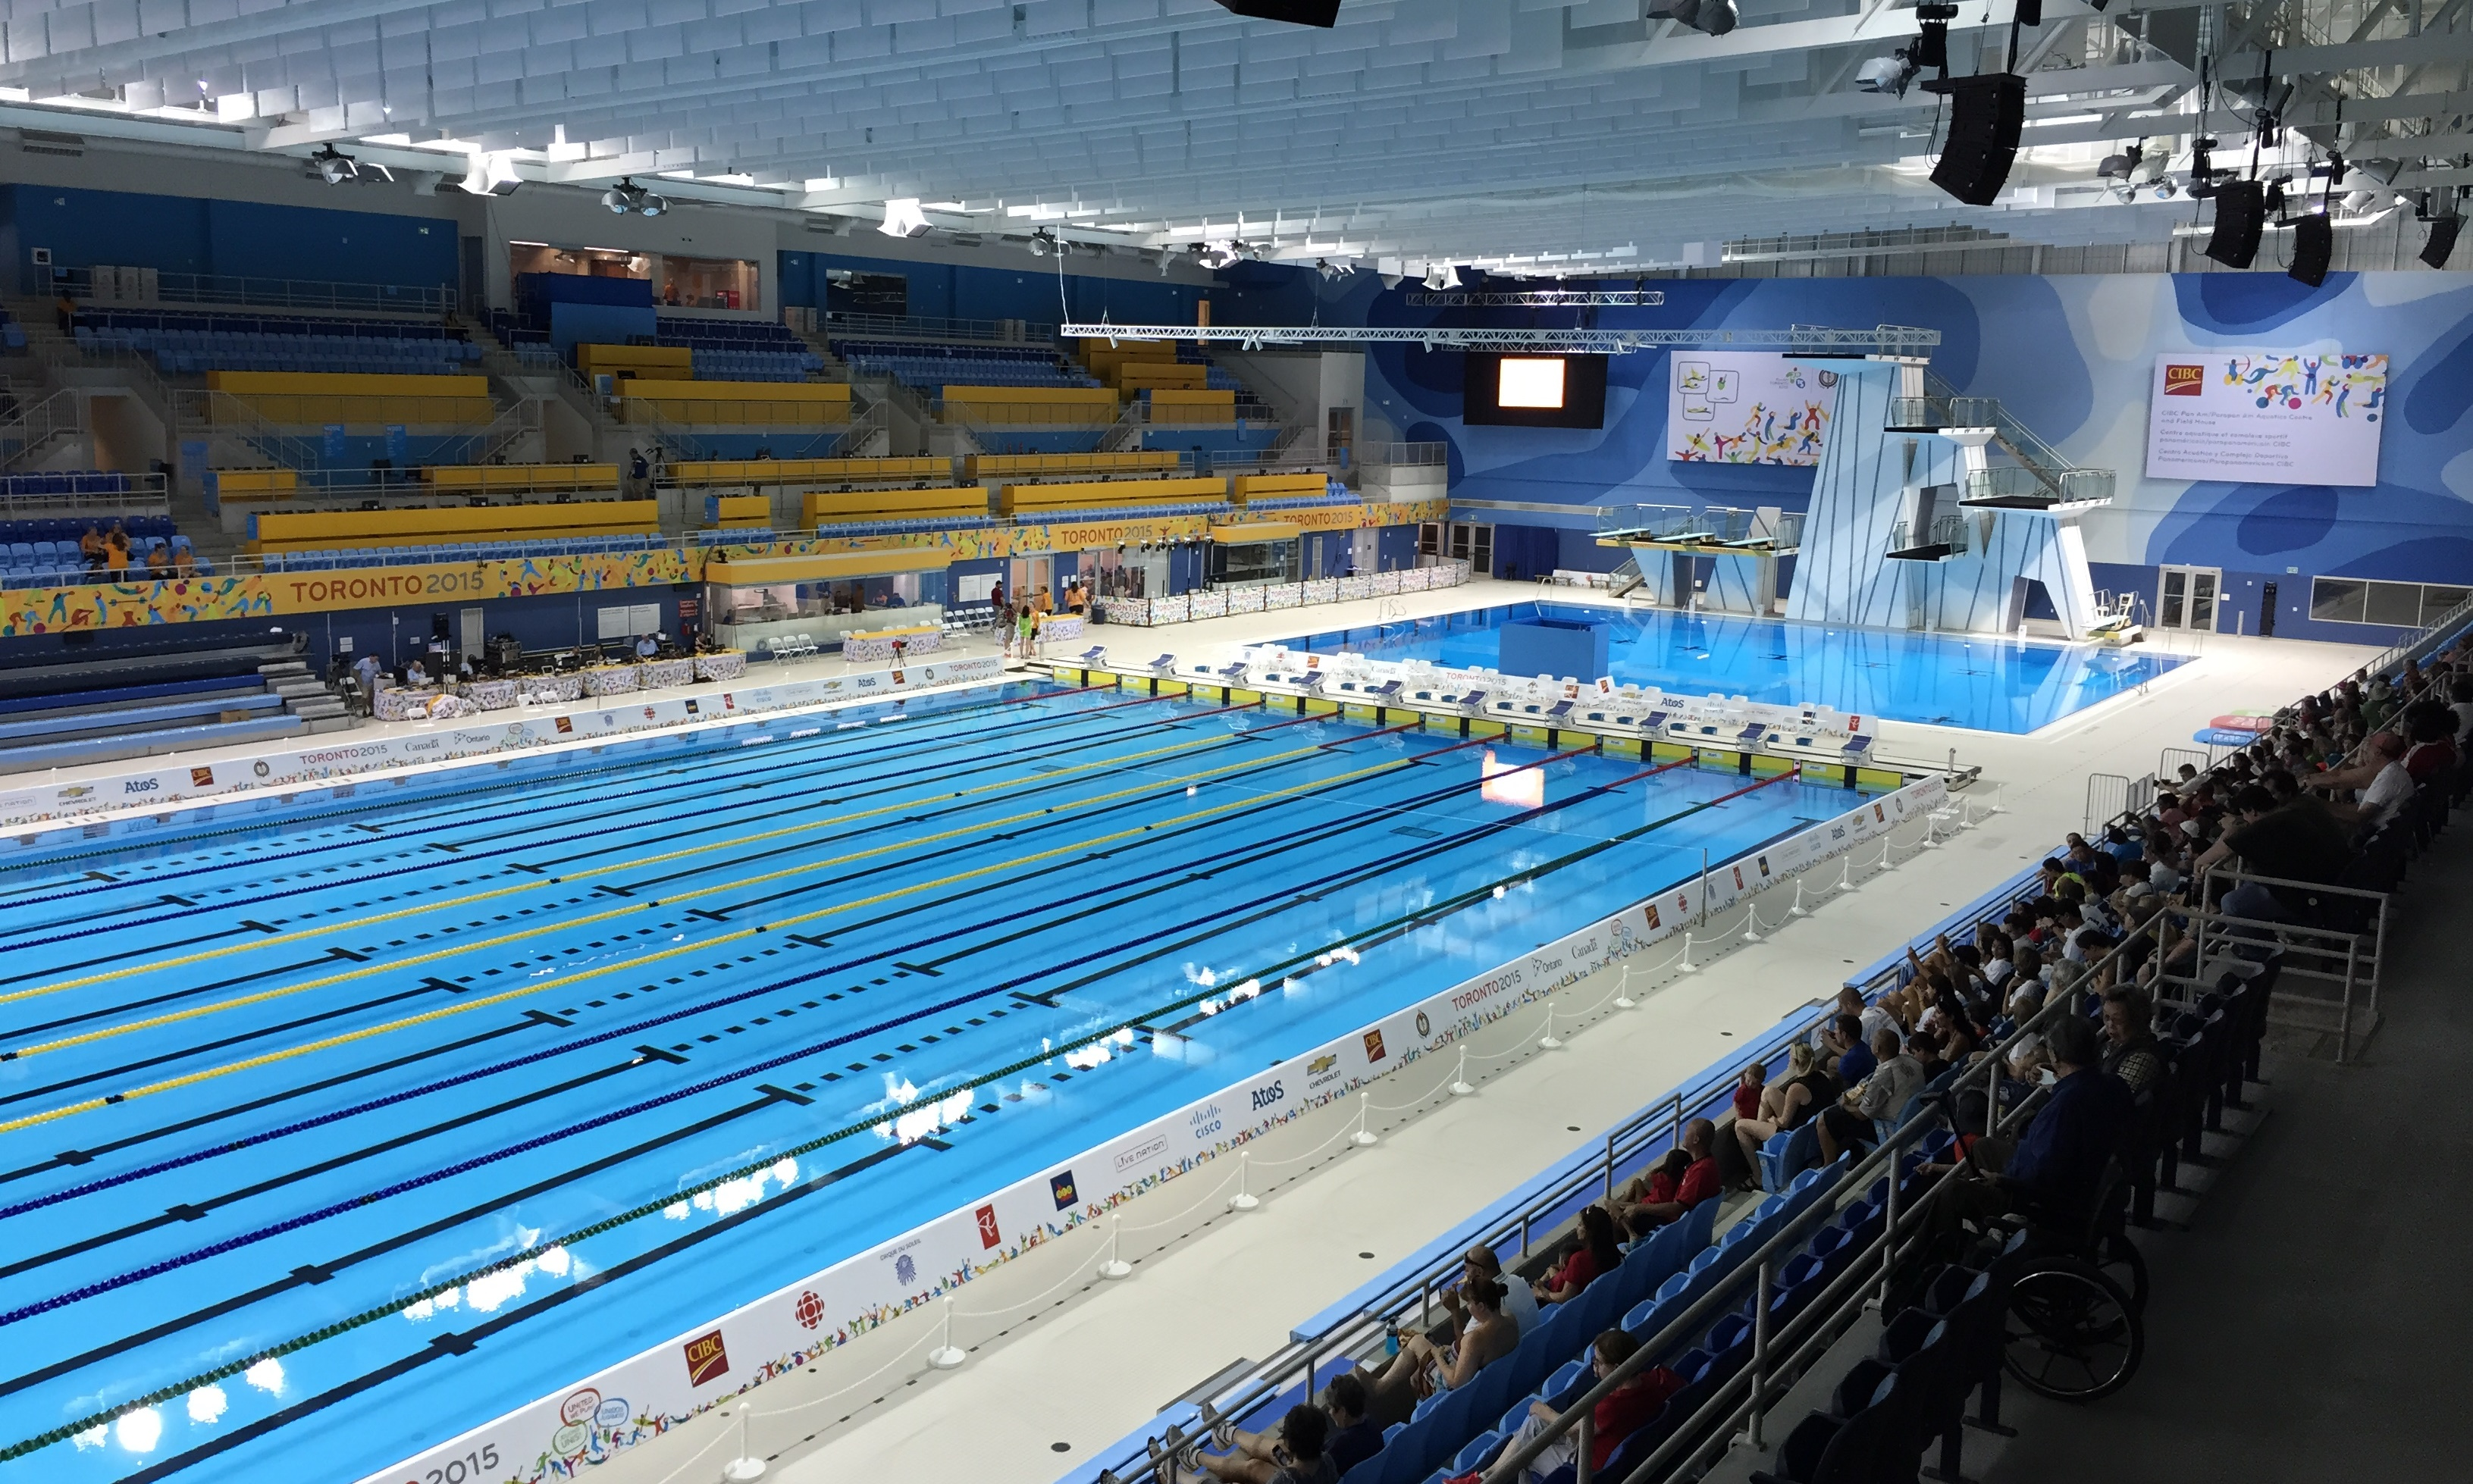 Toronto Pan Am Sports Centre Wikiwand. Beijing China 14 September 2015  People Visit The Olympic Swimming Pool ...